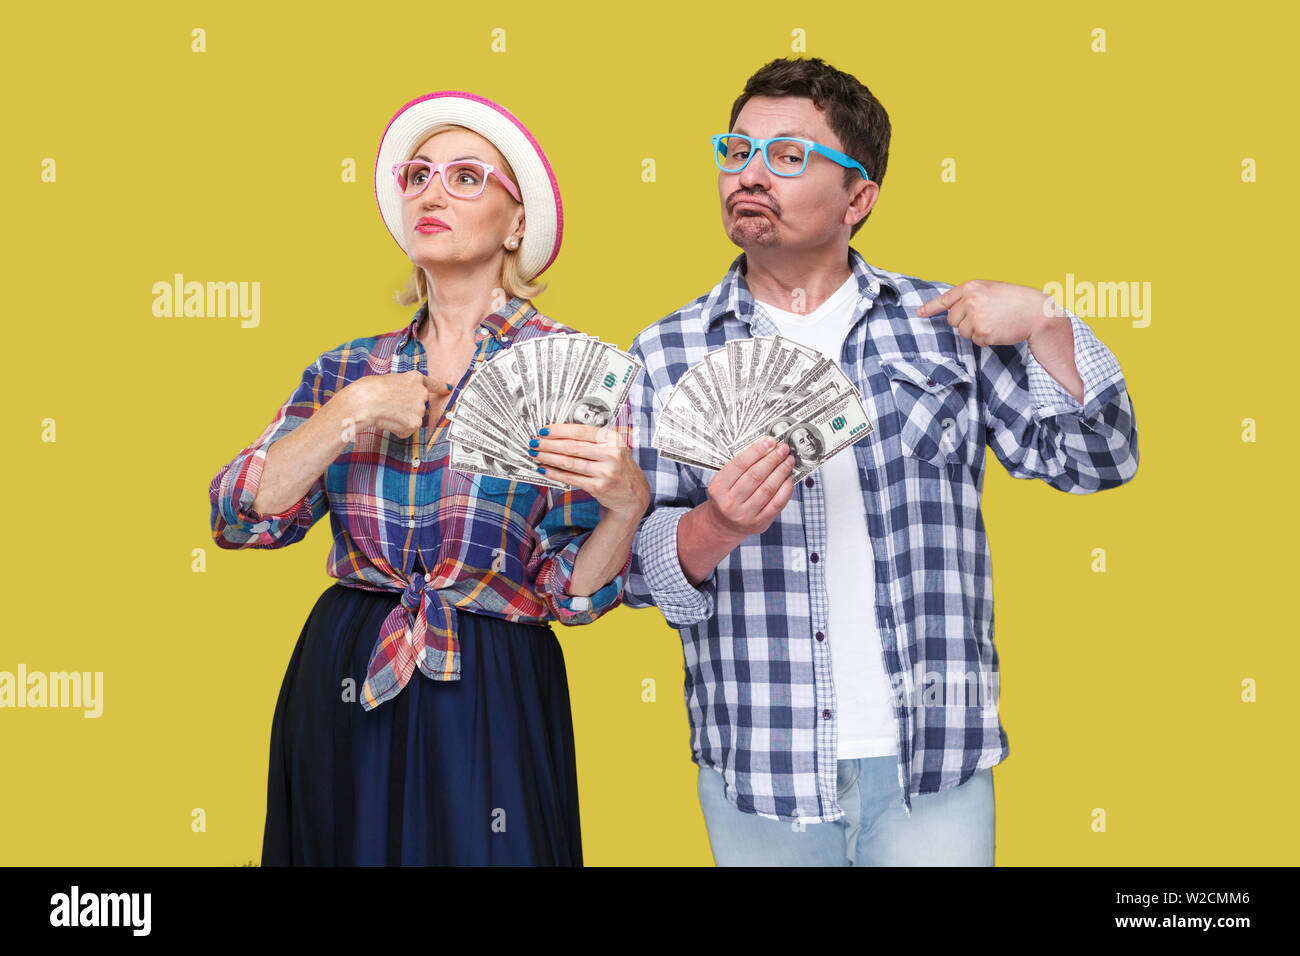 Couple of confident friends, adult man and woman in casual checkered shirt standing together holding fan of dollars and pointing fingers to themself w - Stock Image